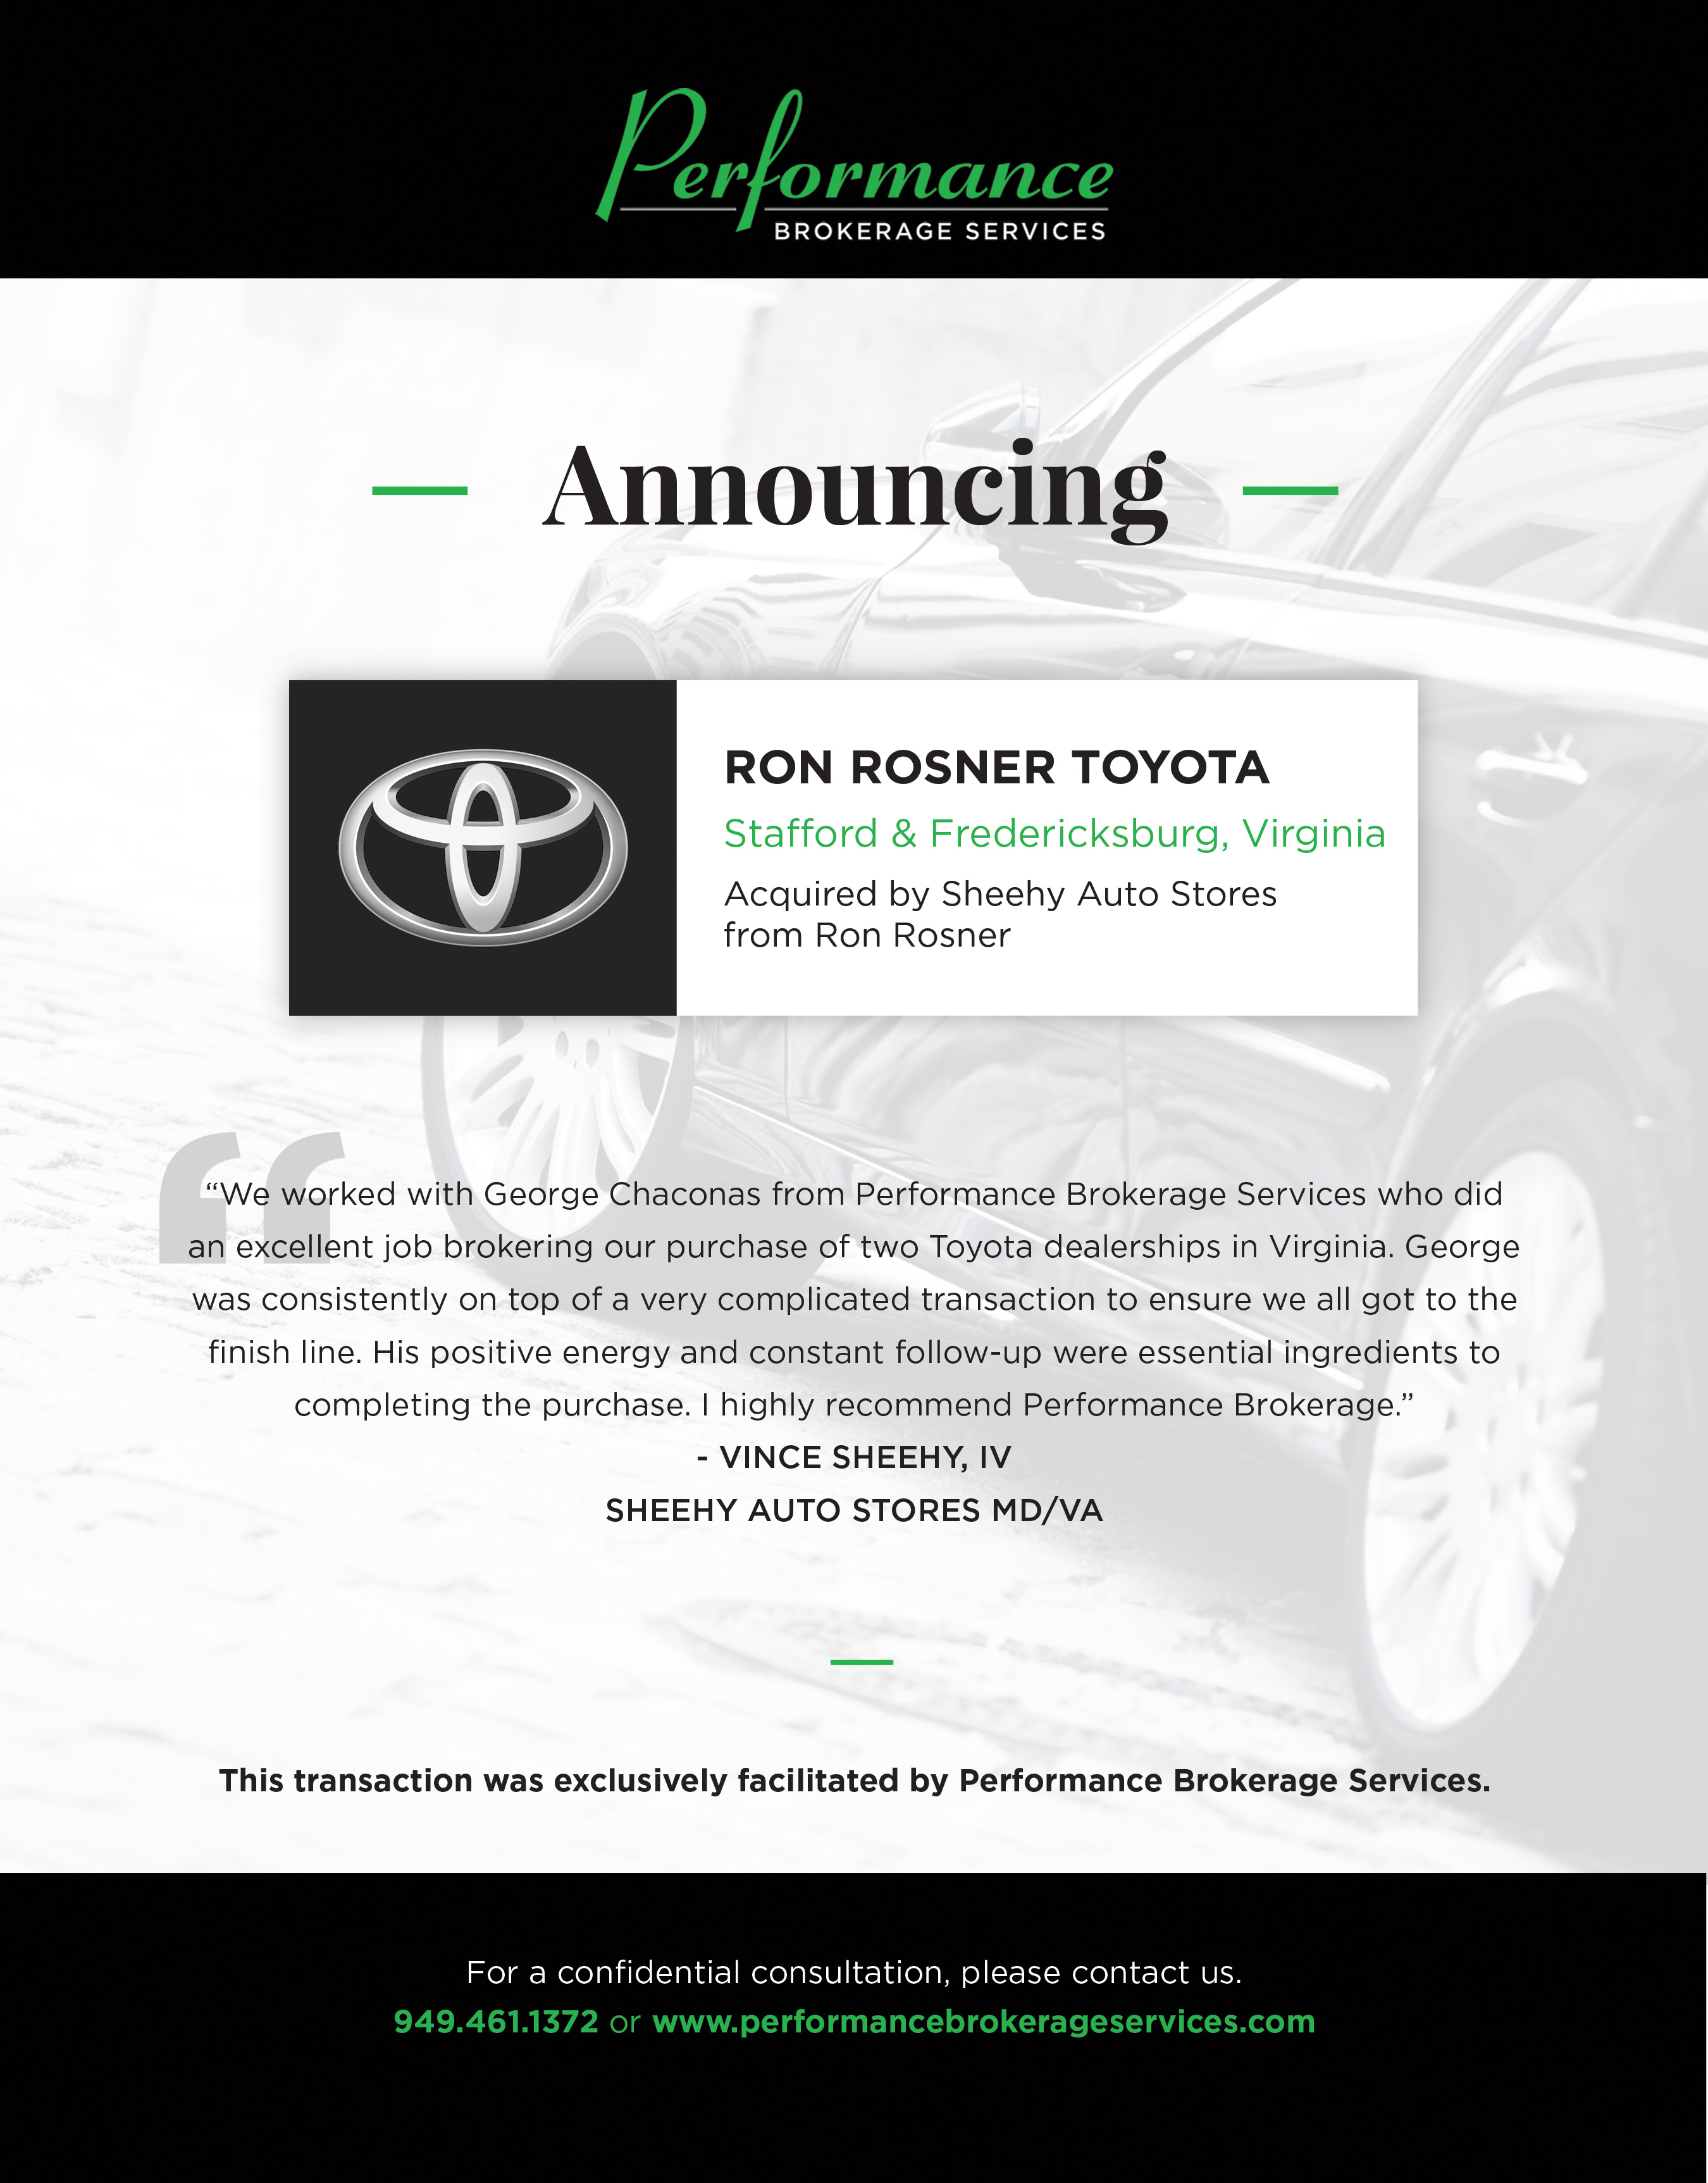 Charming Sheehy Auto Stores Buys 2 Toyota Dealerships From Ron Rosner